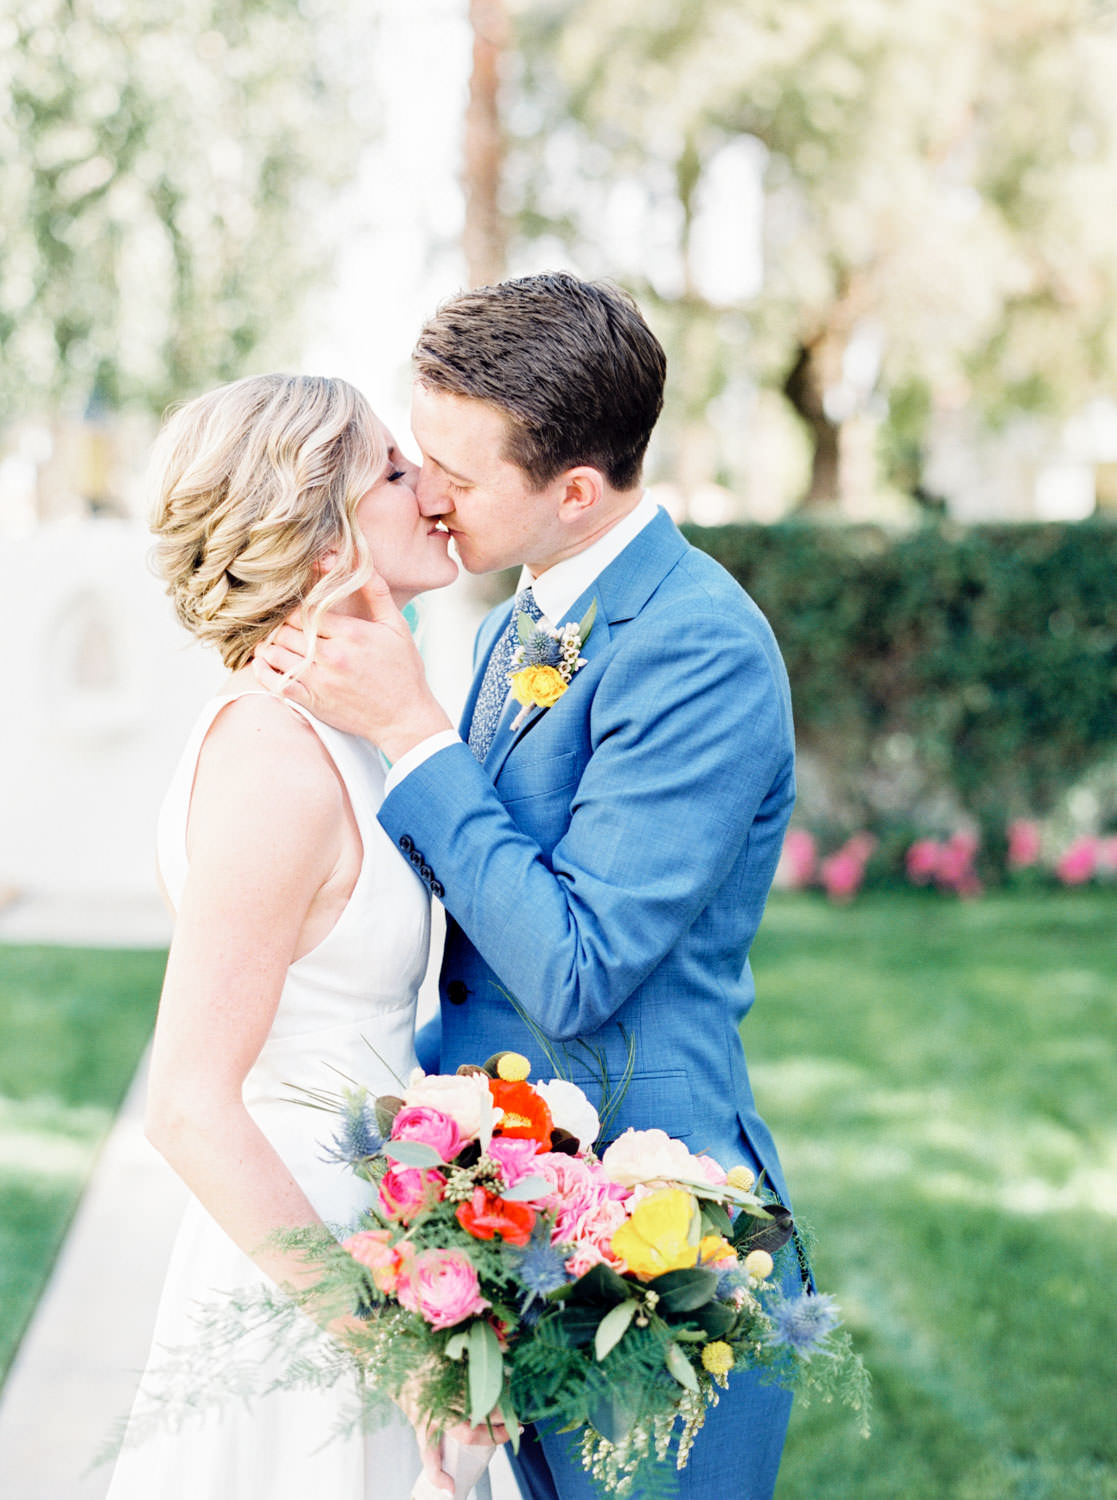 Bridal bouquet with pink yellow orange and green bouquet, Bride and groom portraits, groom in blue suit with yellow boutonniere, bride wearing Rebecca Schoneveld Lincoln gown, La Quinta Resort Wedding in Palm Springs, Cavin Elizabeth Photography